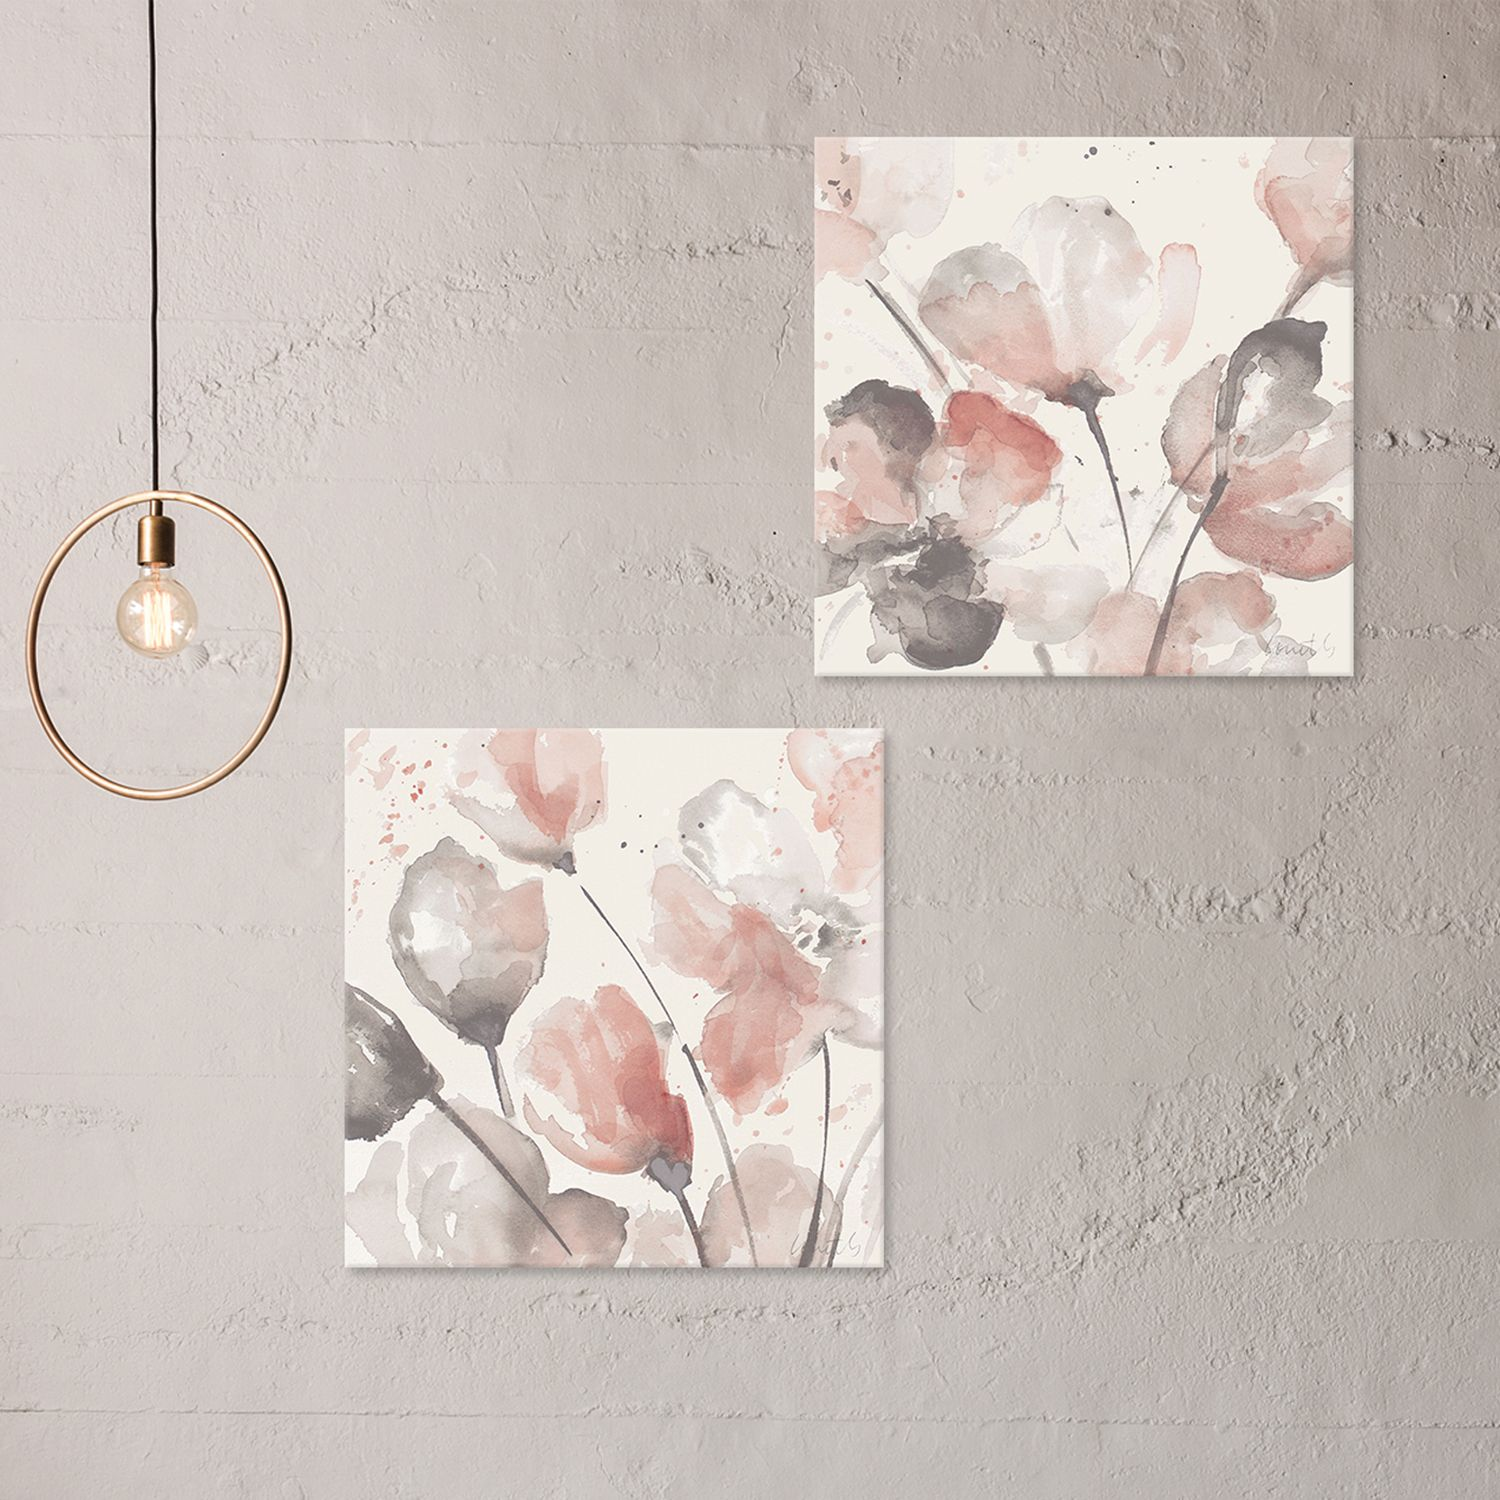 Artissimo Designs Neutral Pink Floral Canvas Wall Art 2 Piece Set